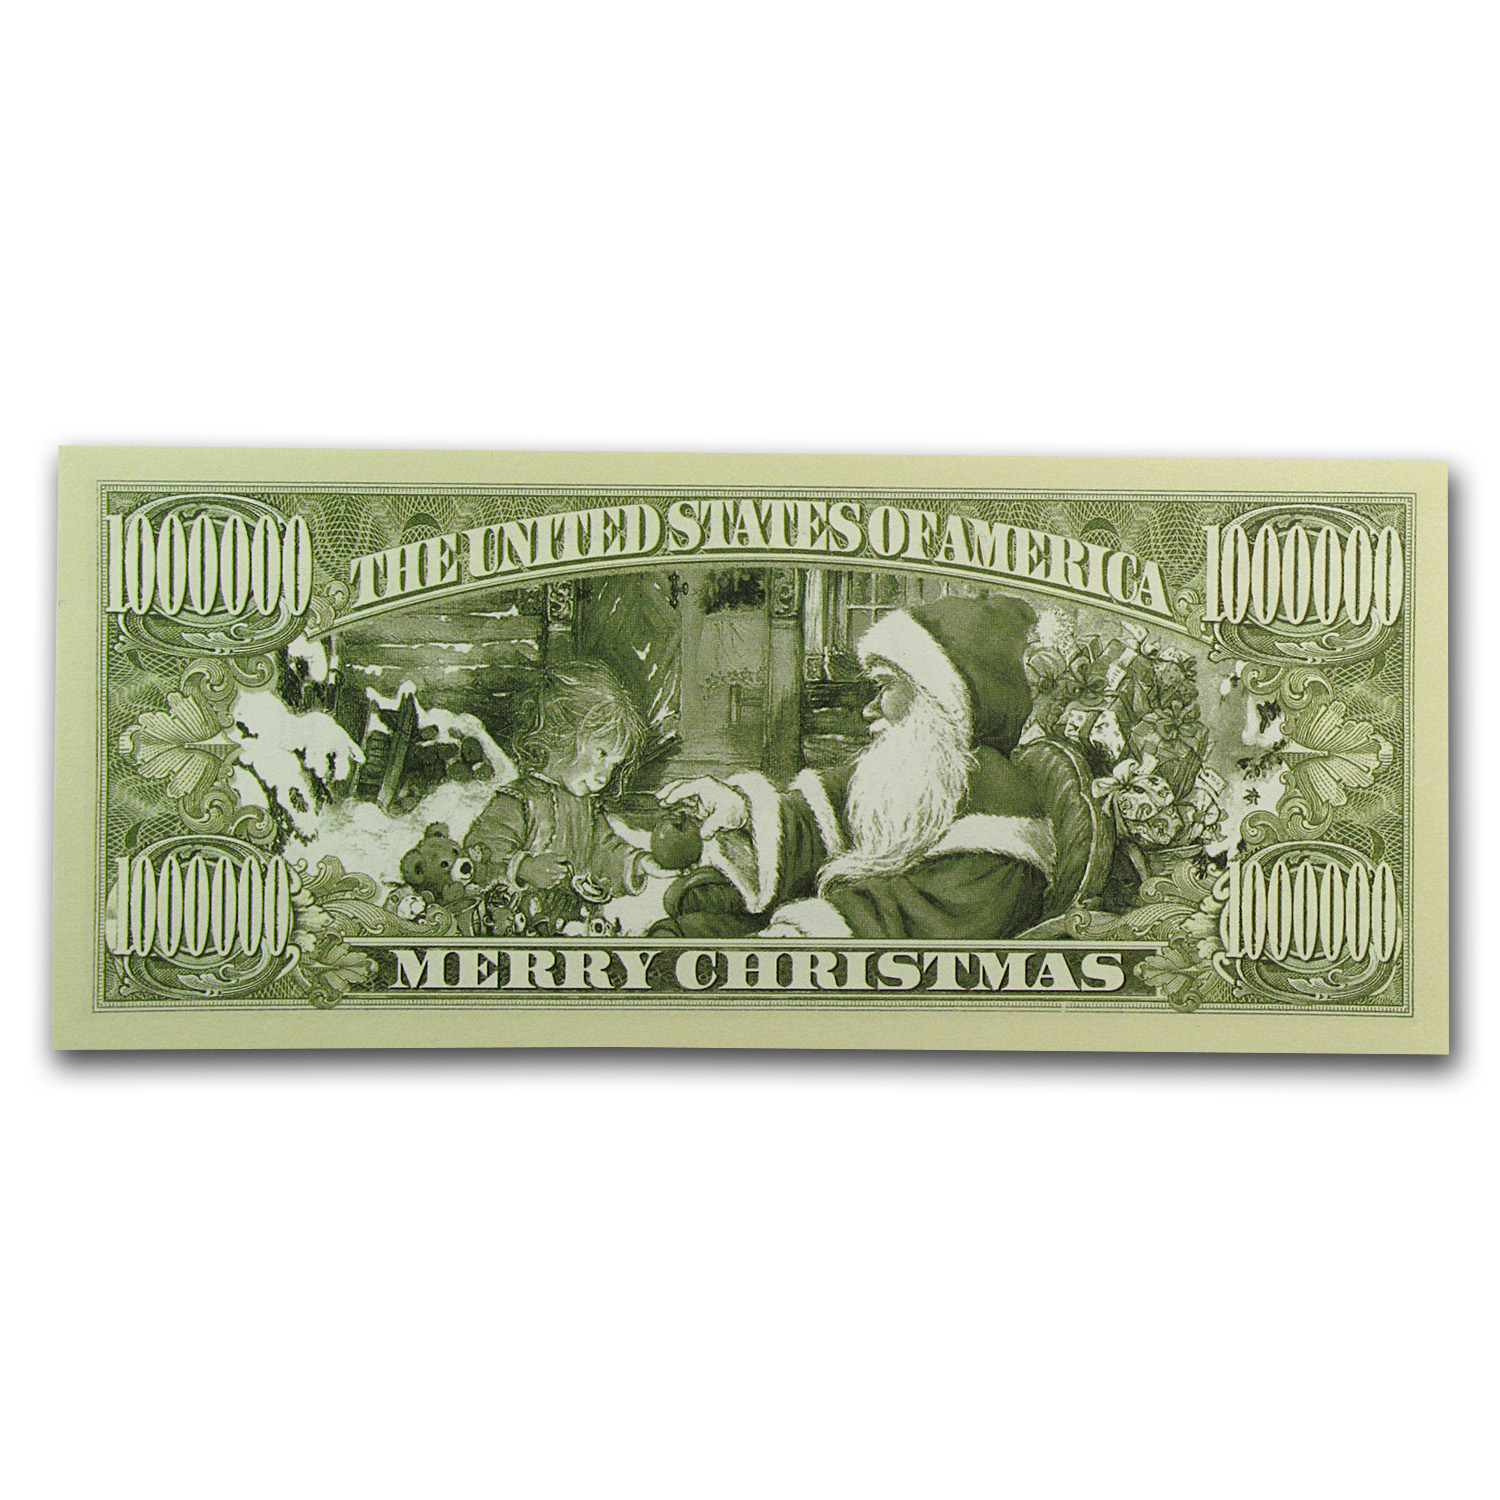 Novelty $1,000,000 Bills - Santa (10 ct)